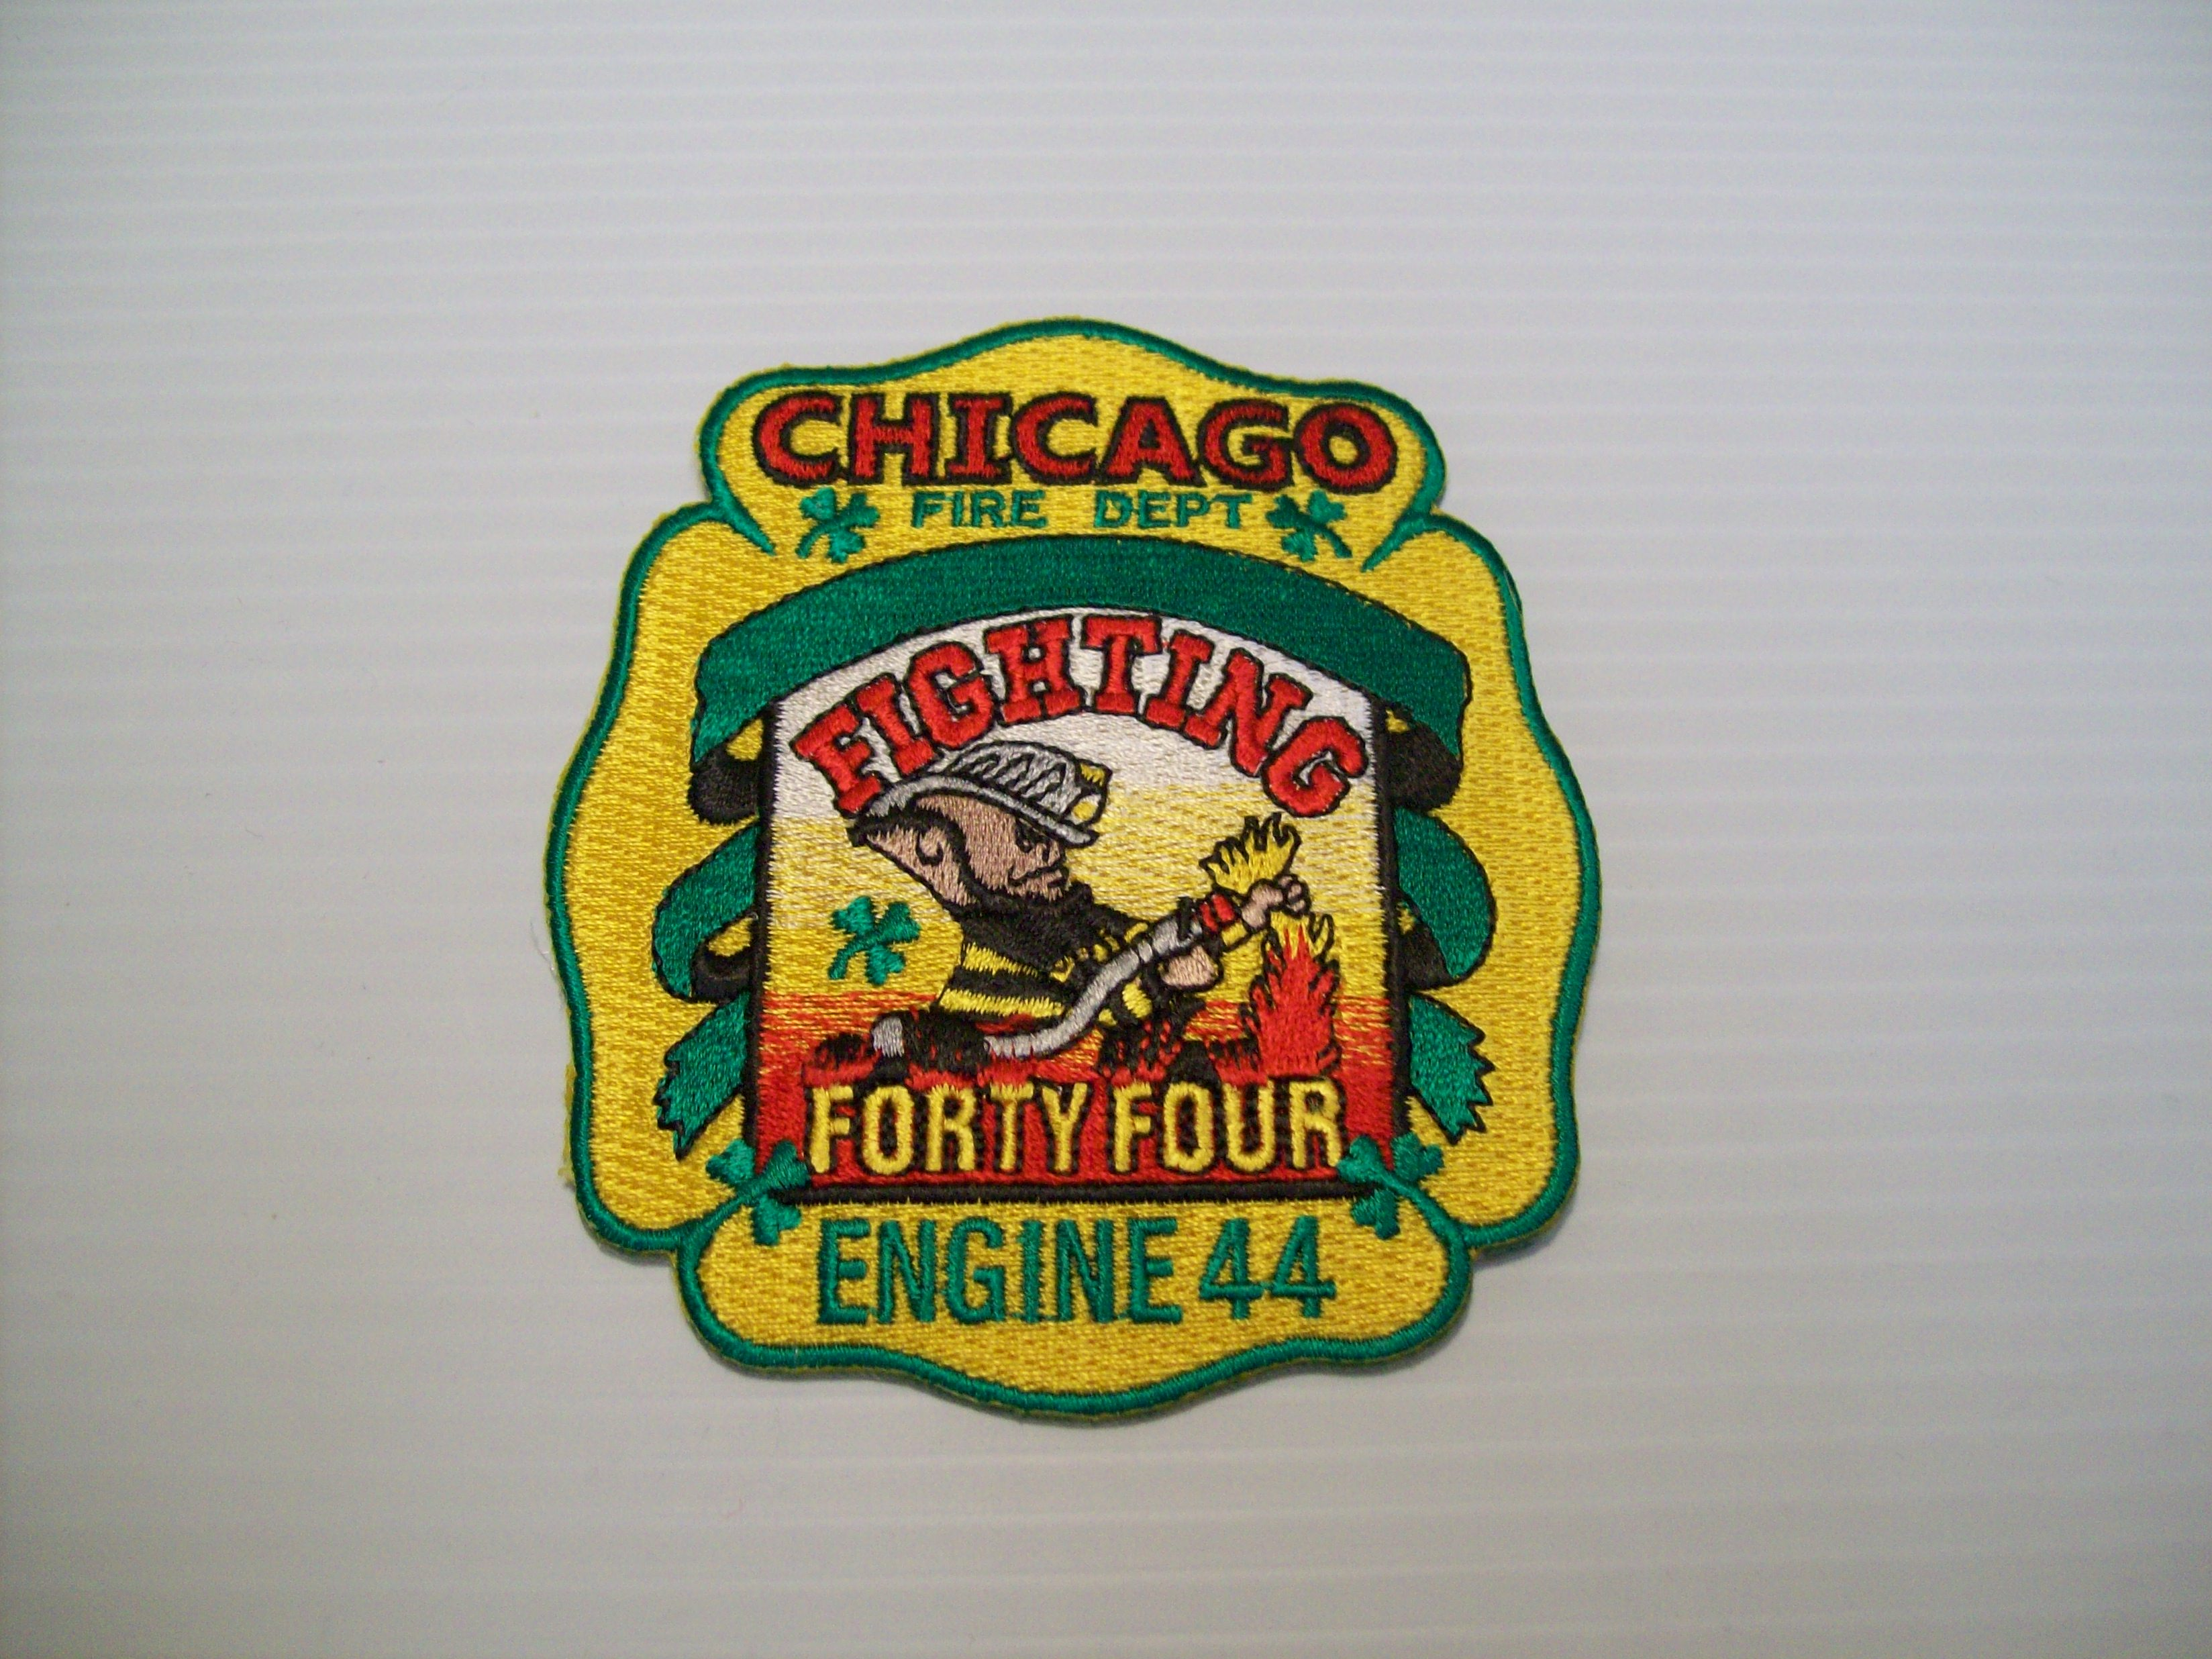 Chicago fire department eng 44 shraders goods chicago fire department eng 44 biocorpaavc Images